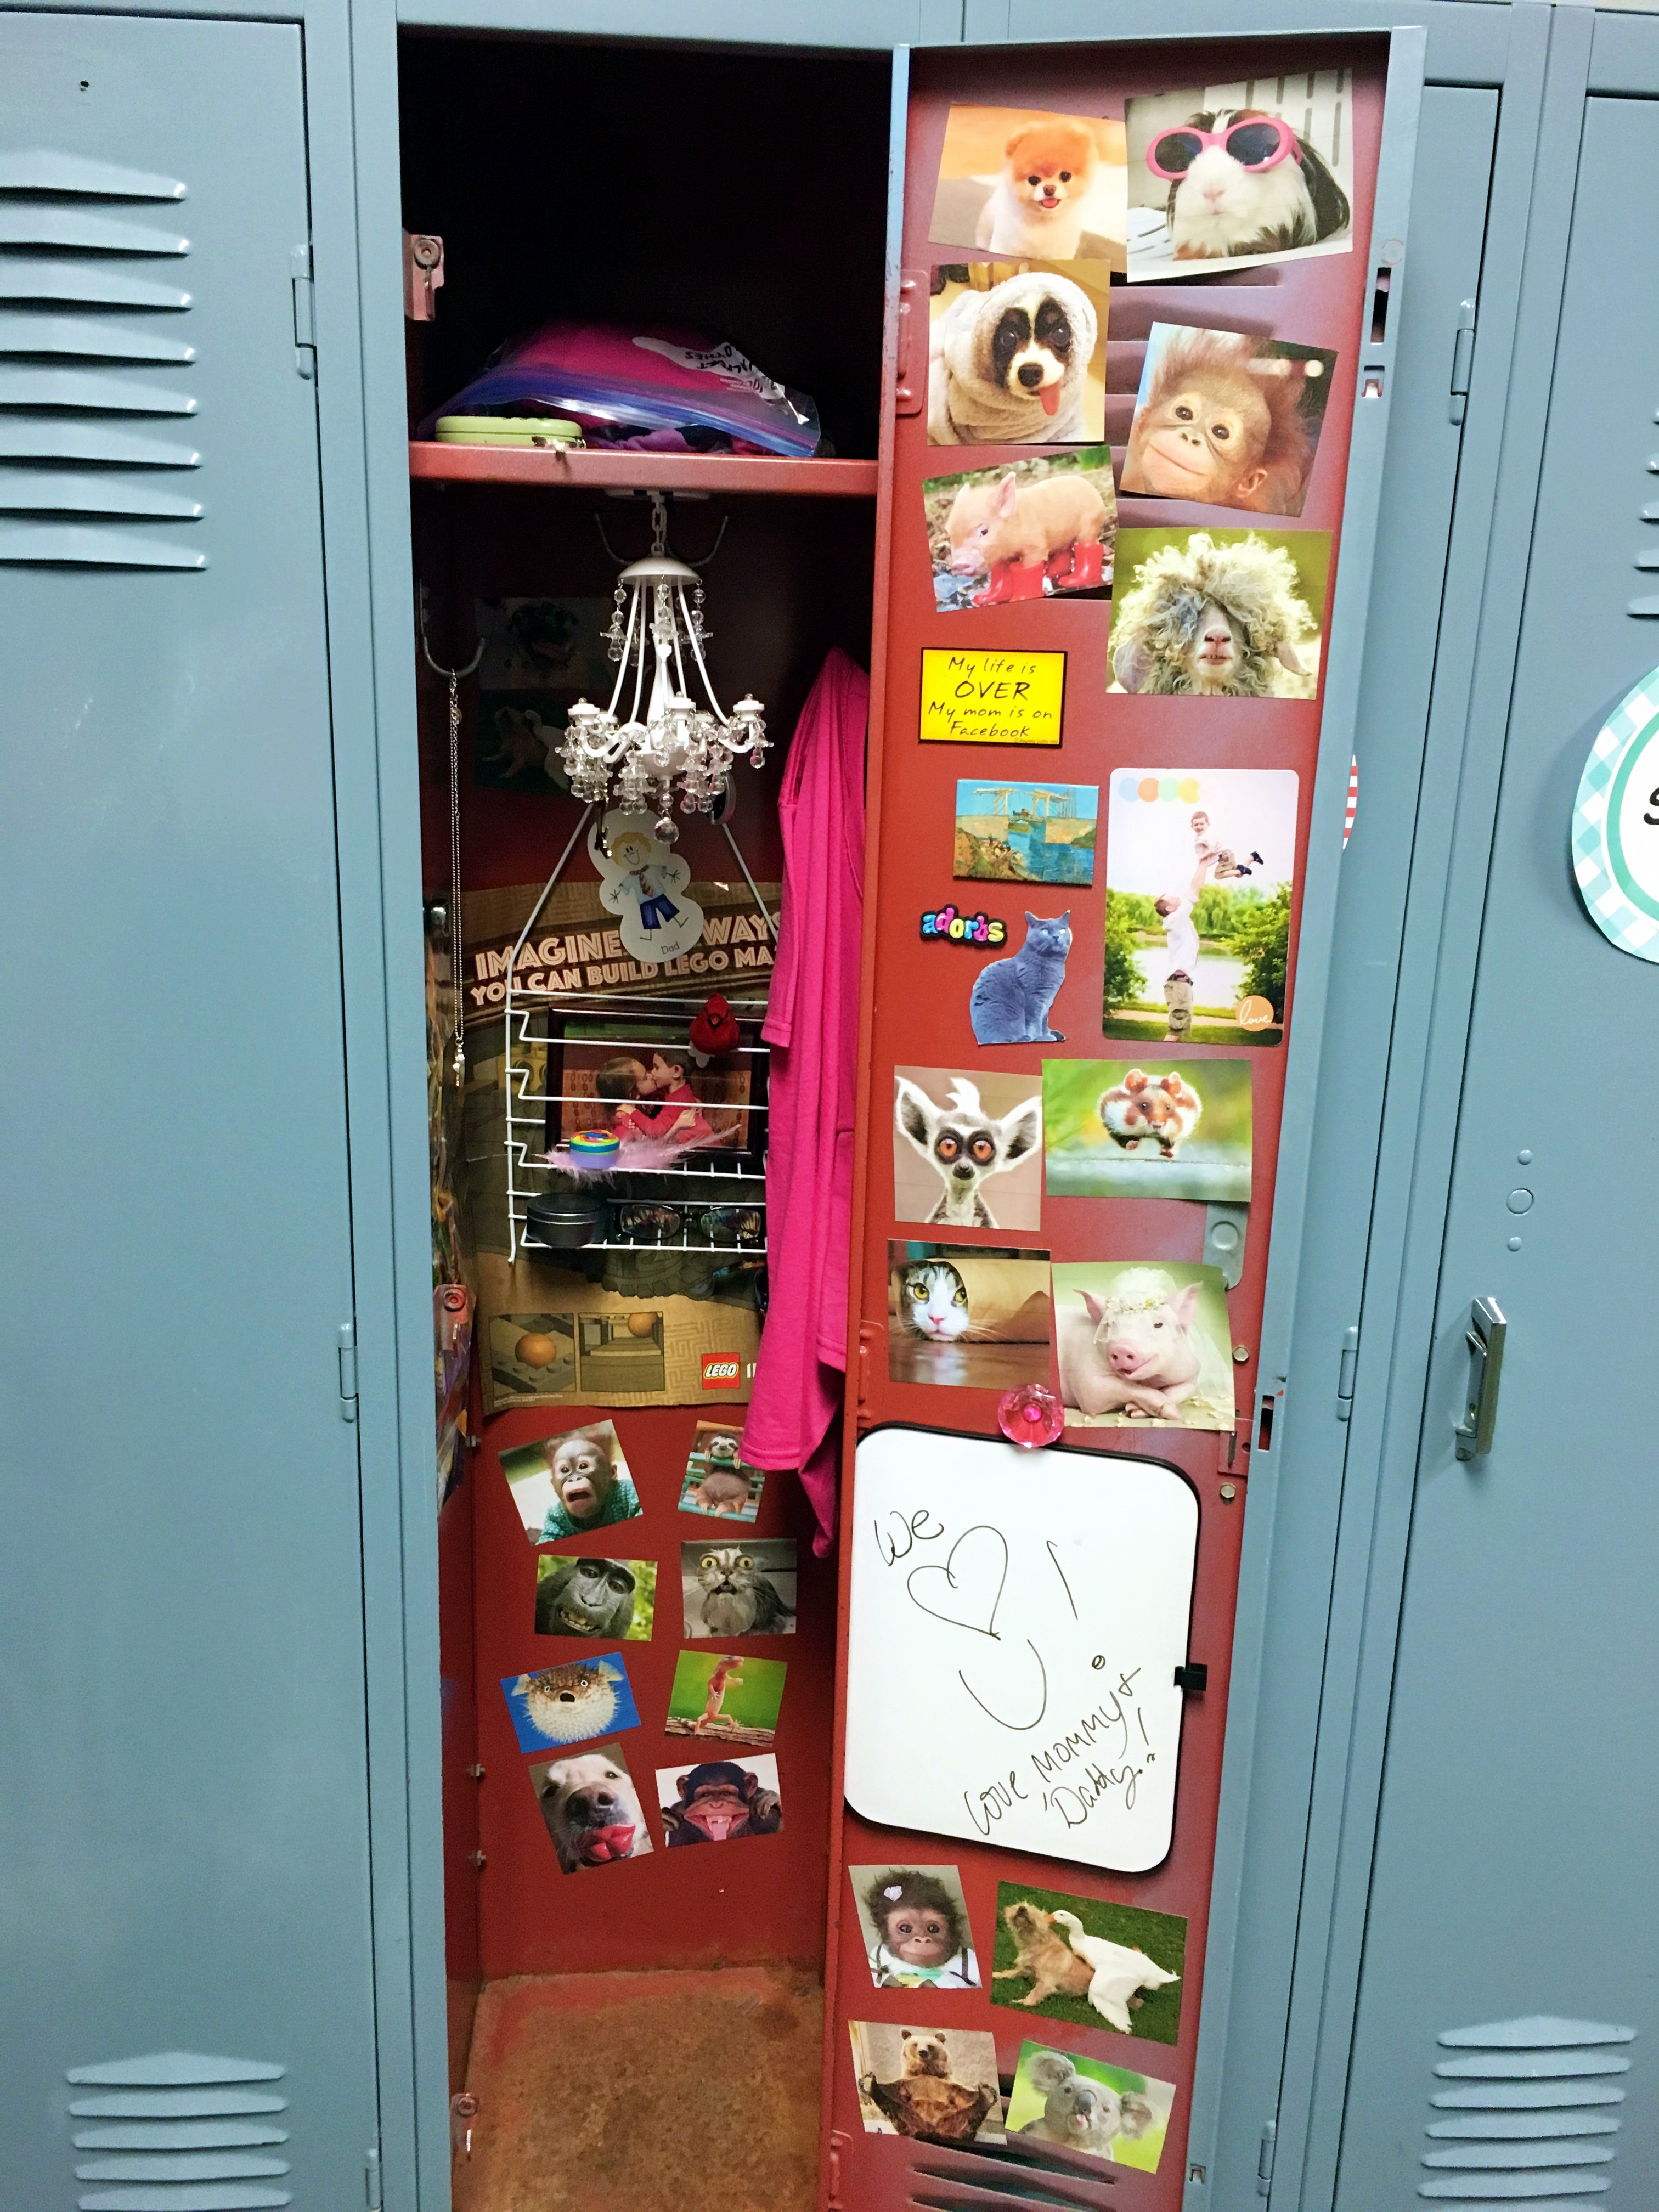 How to decorate your kid 39 s locker cheaply for Locker decorations you can make at home